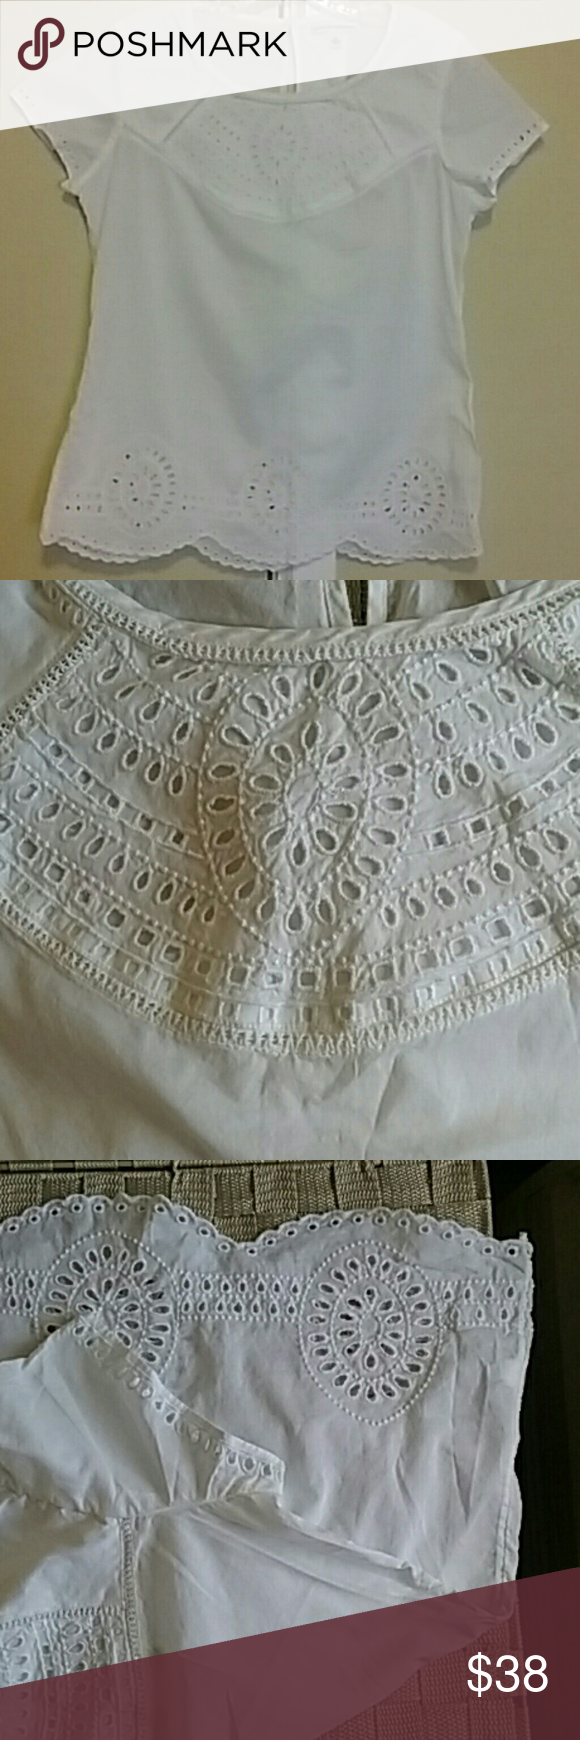 Banana Republic Eyelet Top Beautiful eyelet bib, hem and sleeves. In excellent condition, worn once.  It is as good as new,  no flaws.  100% cotton. Banana Republic Tops Blouses